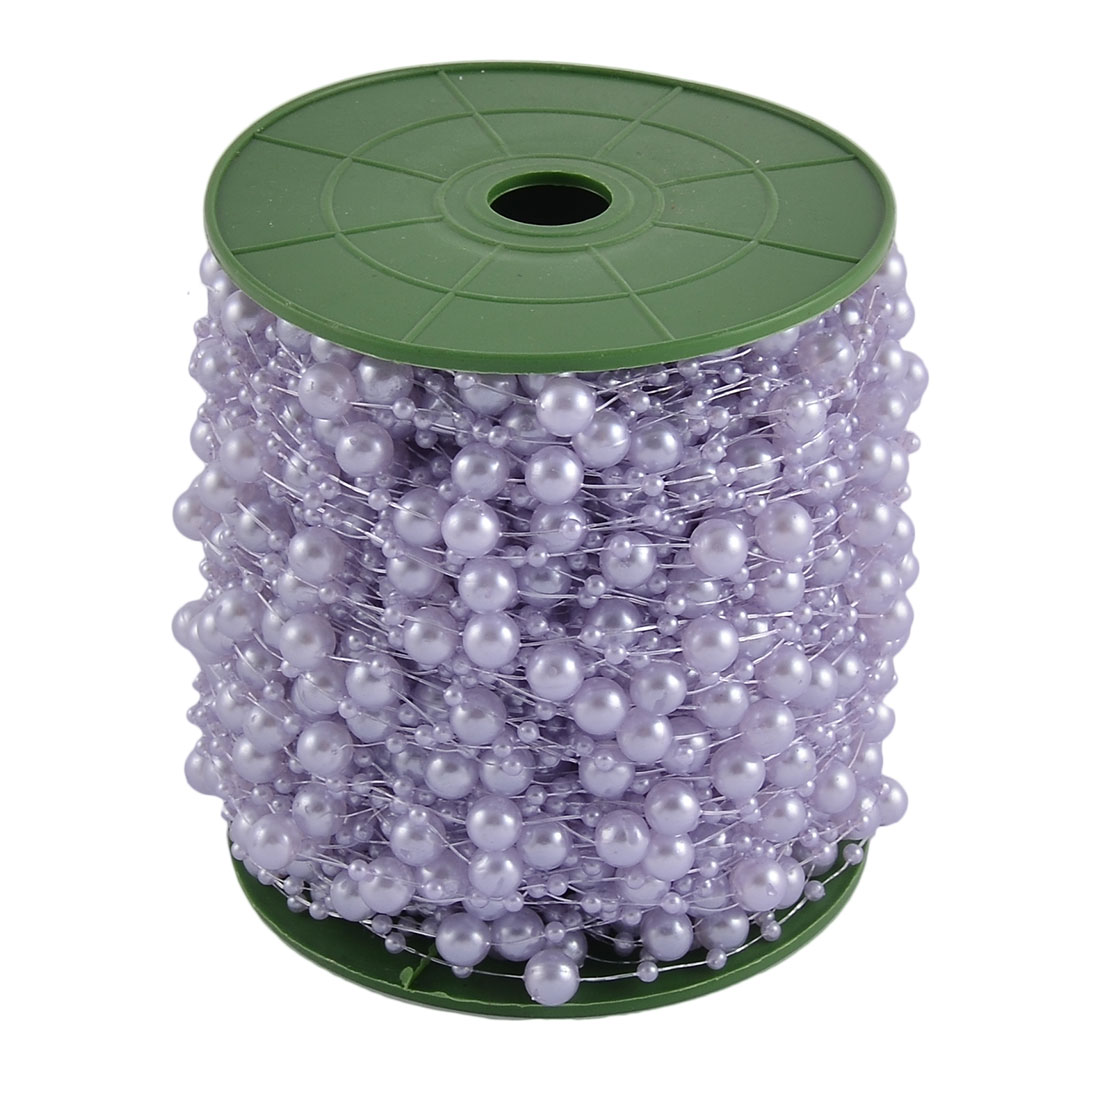 Festival Party Crafting DIY Garland Flower Table Decoration Imitation Pearl Beads String Roll Pale Purple